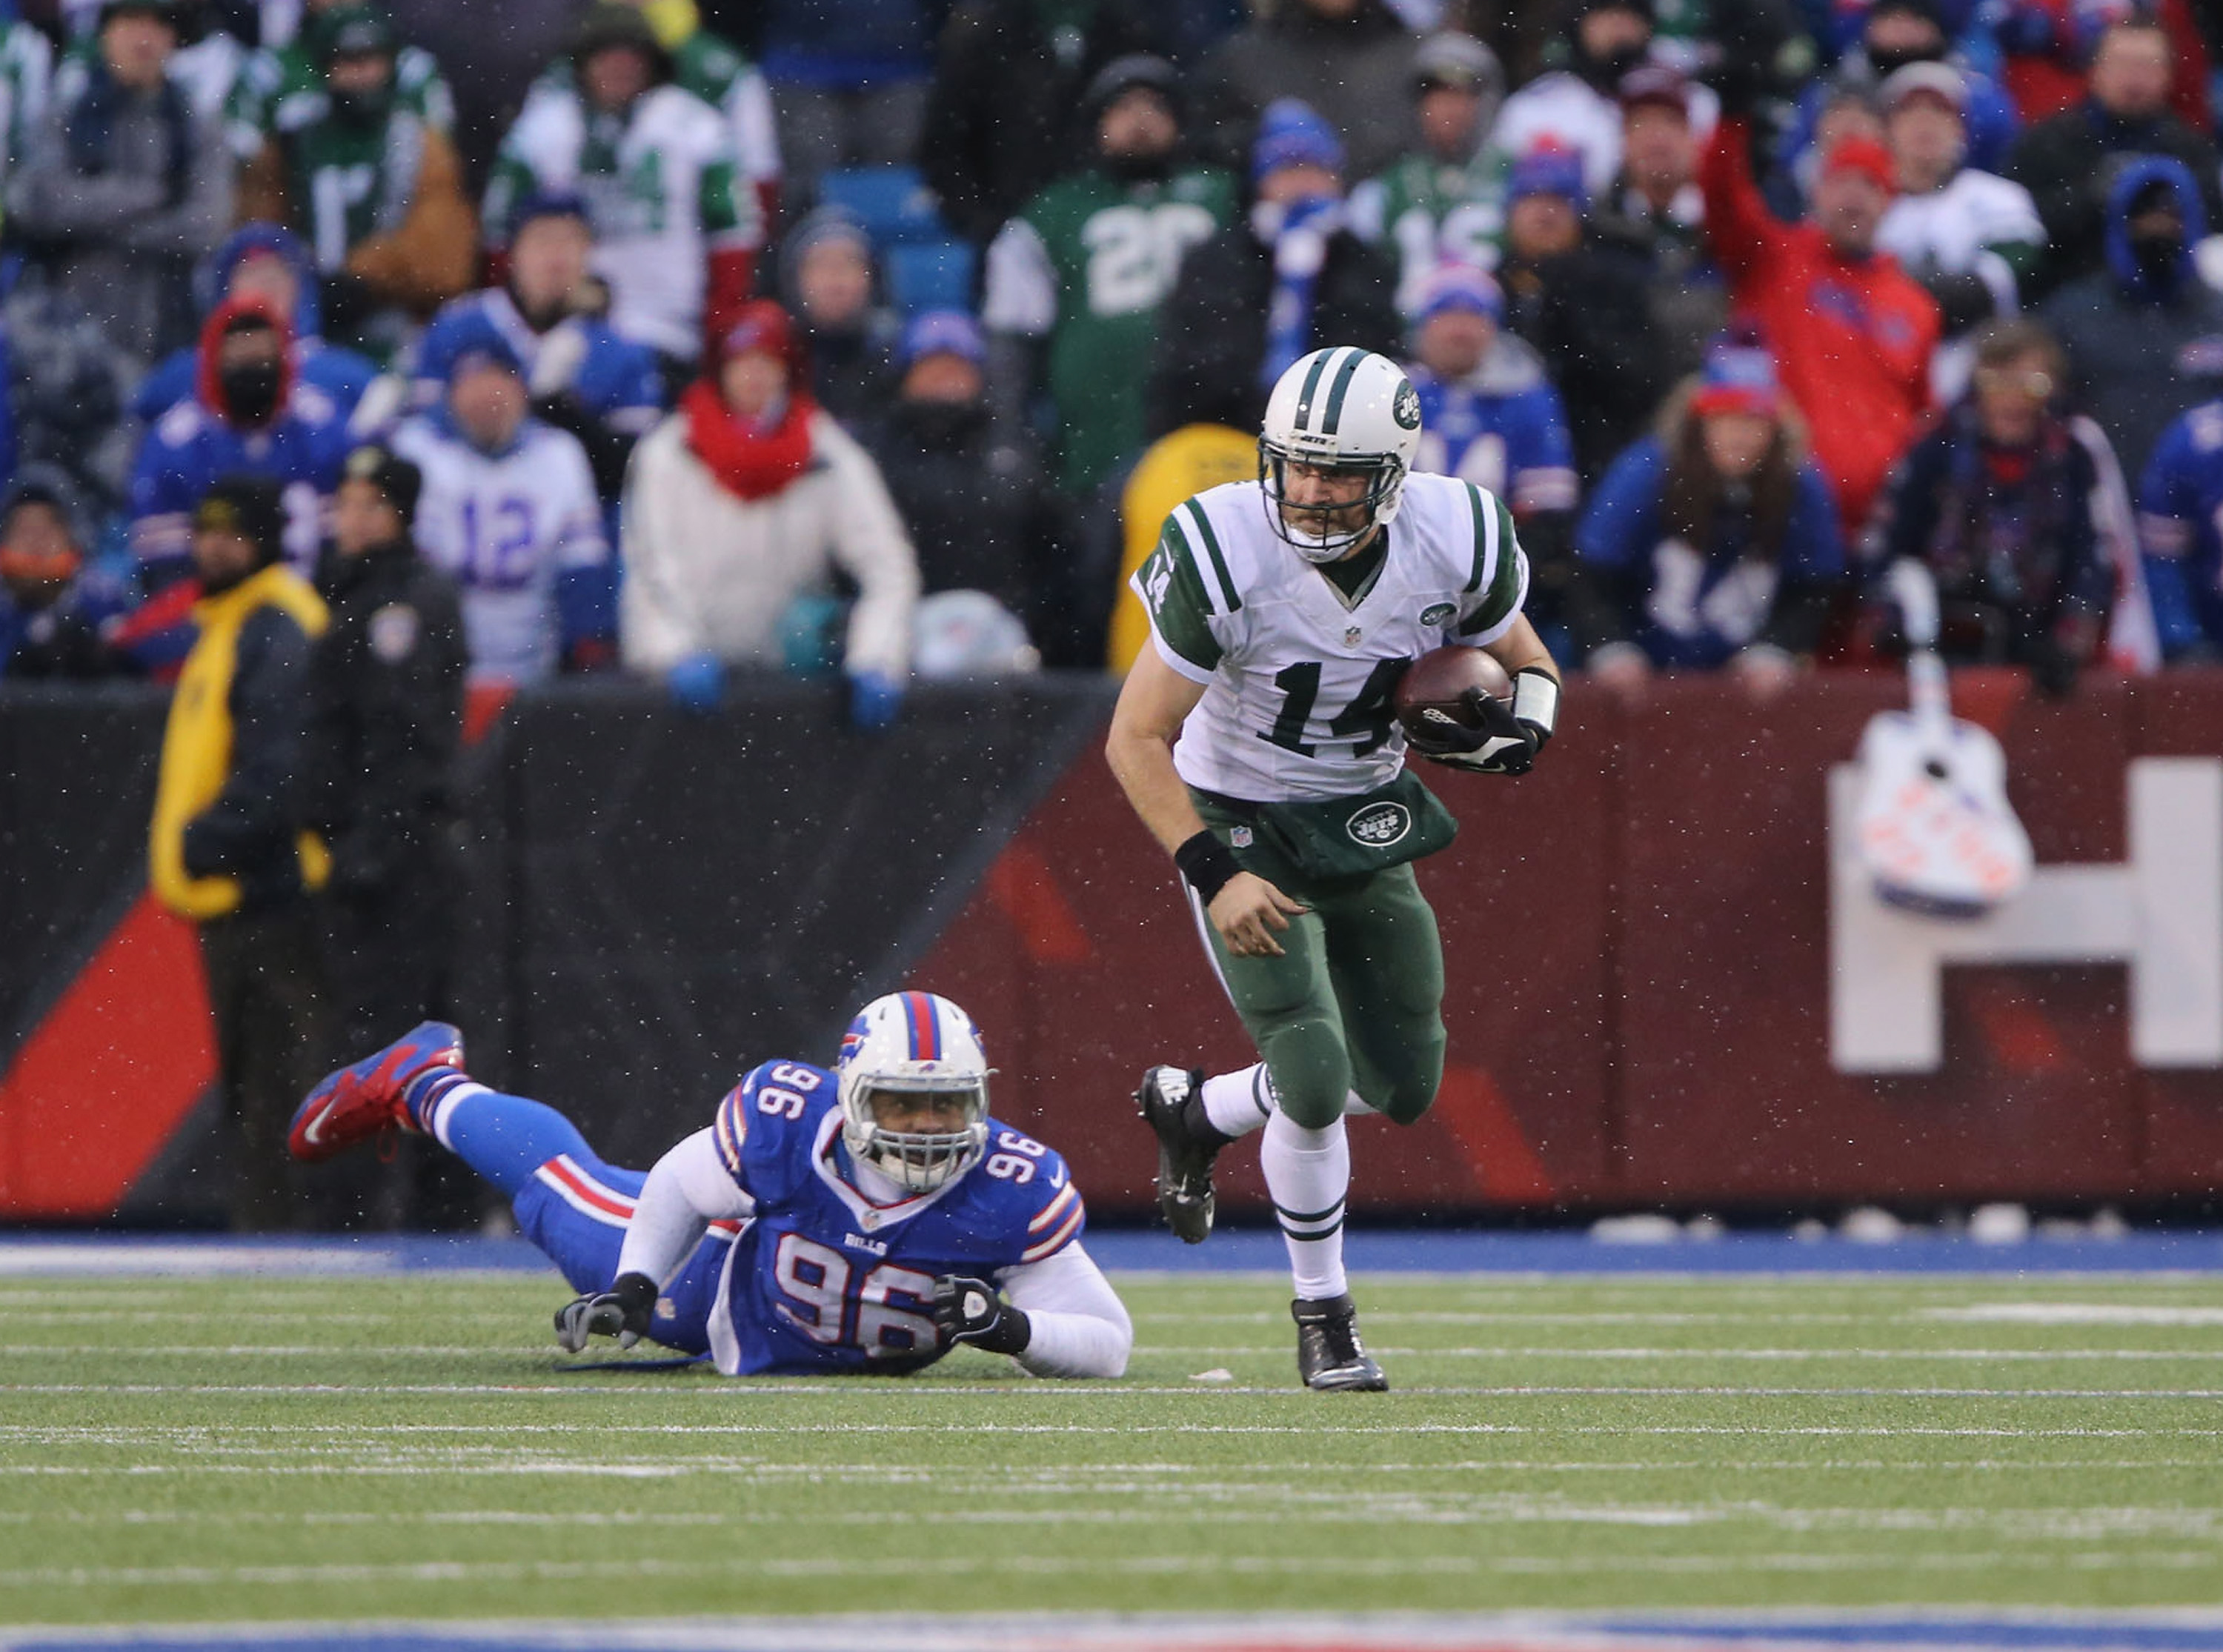 Jets Bills How To Watch Nfl S Thursday Night Football For Free Money